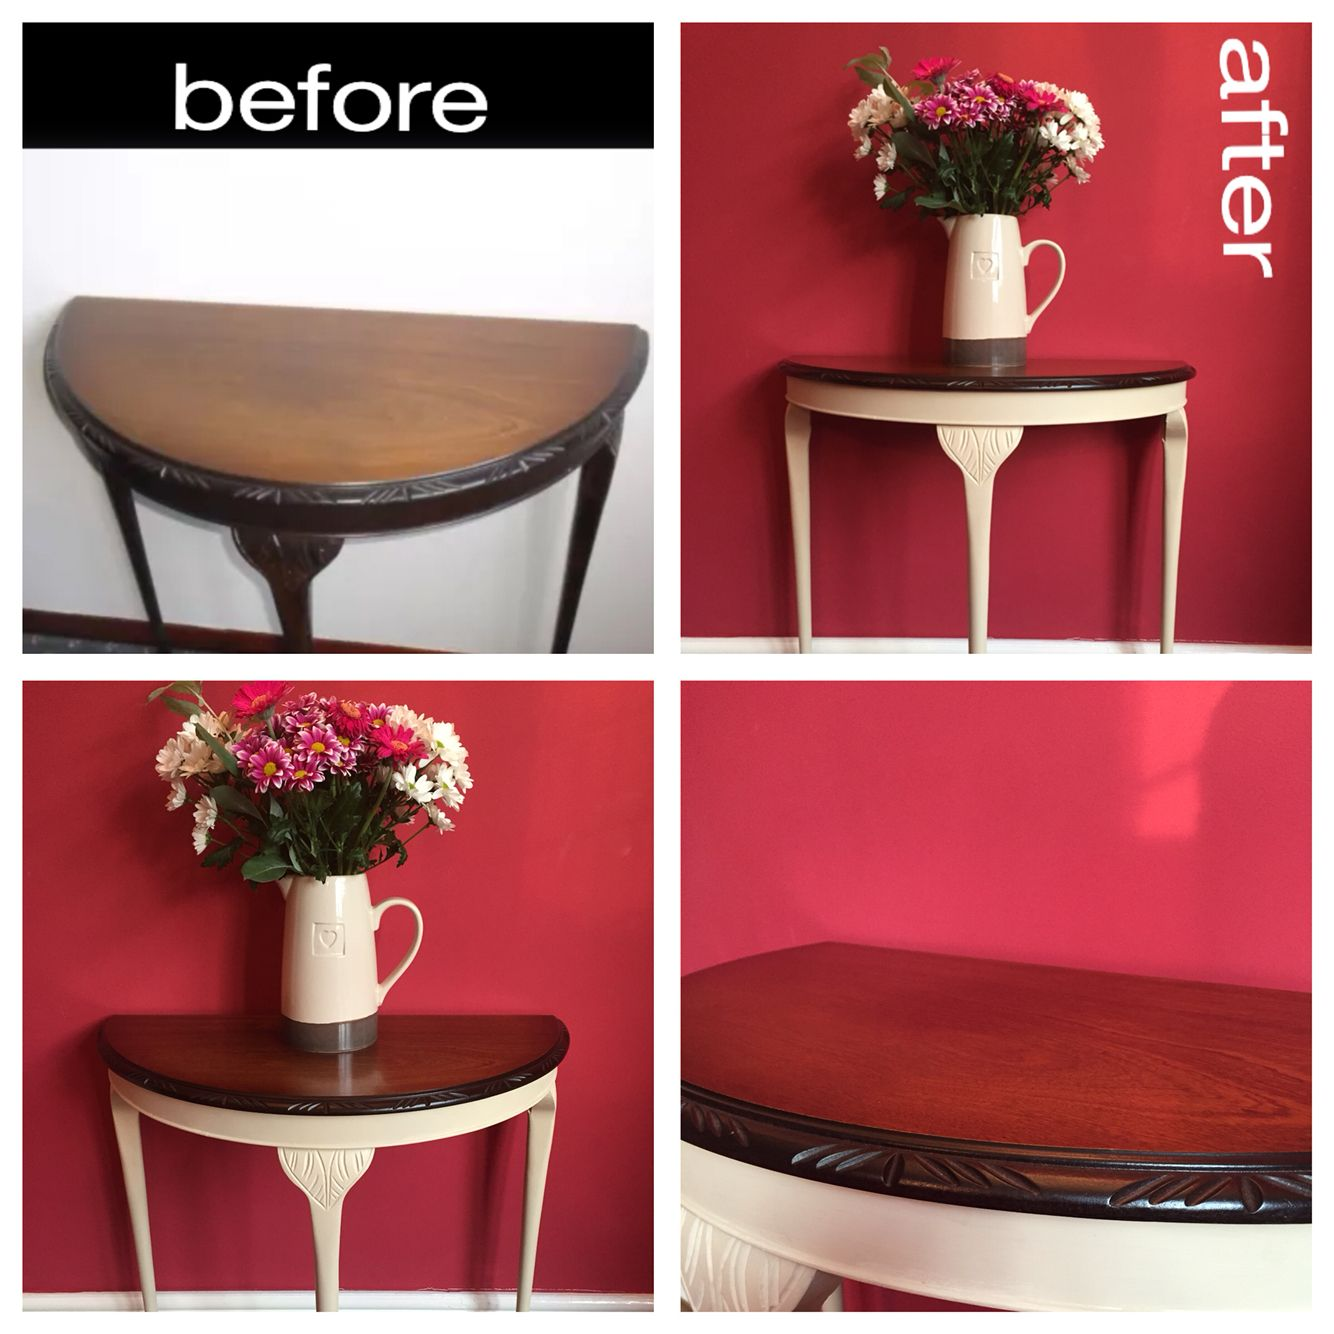 Before And After Of Our Half Moon Table Entrance Table Decor